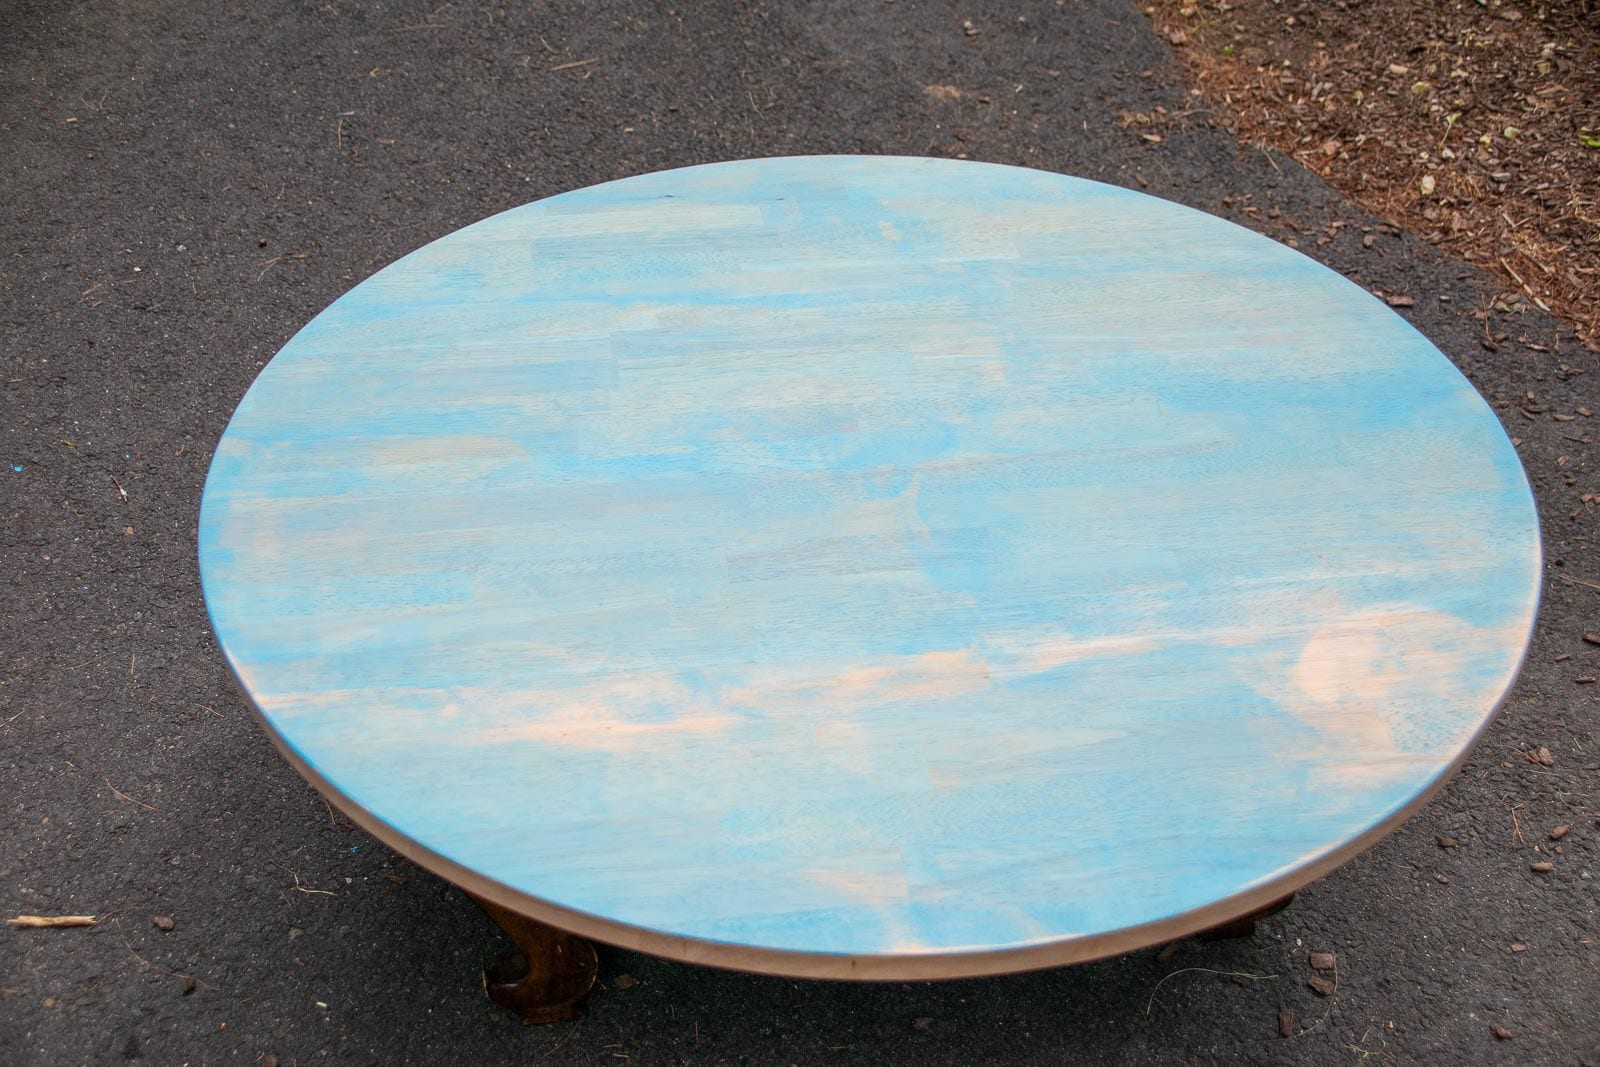 blotchy stain on table top